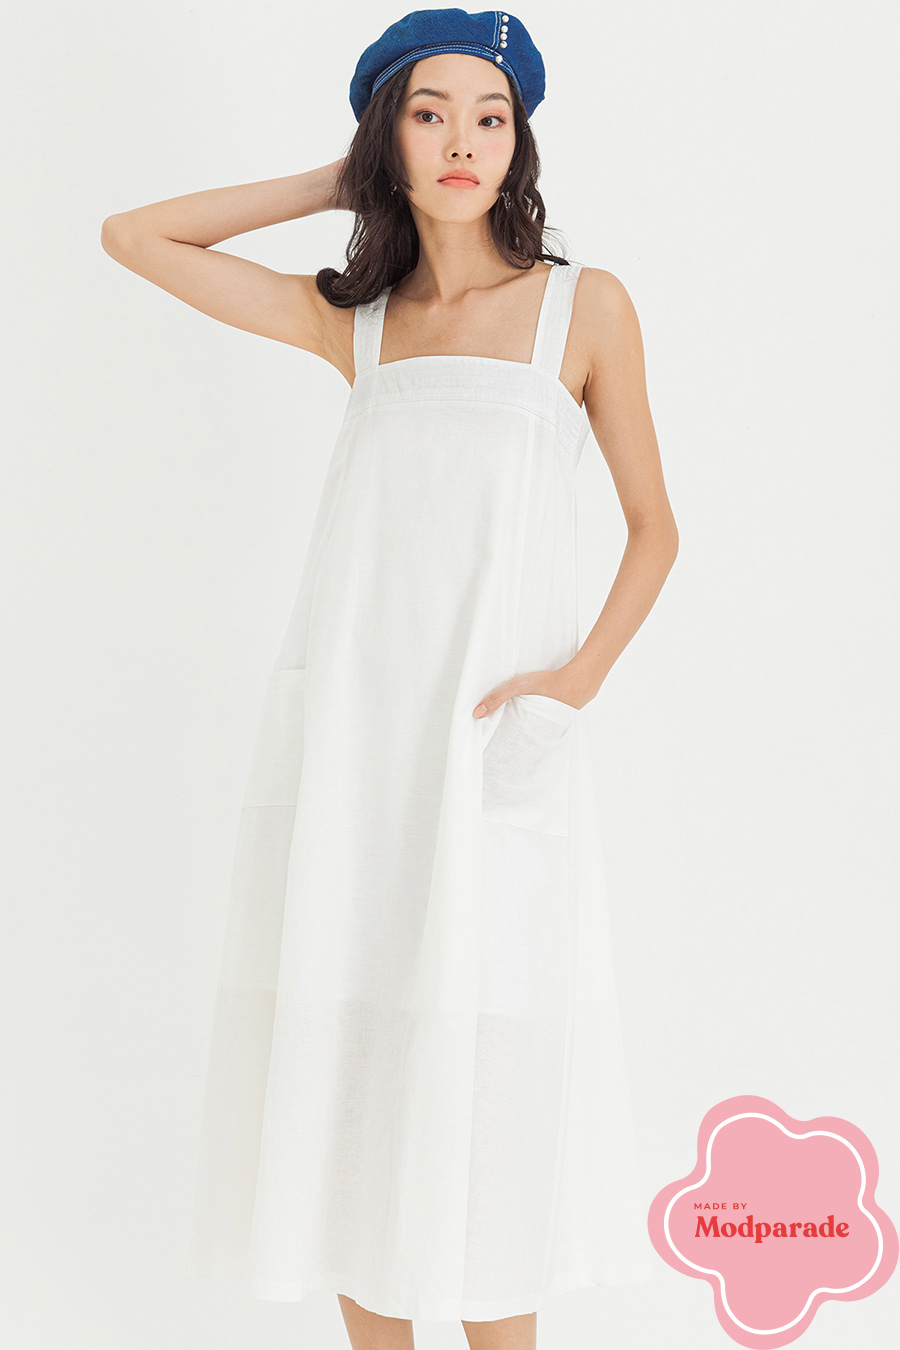 VALLEE DRESS - IVORY [BY MODPARADE]